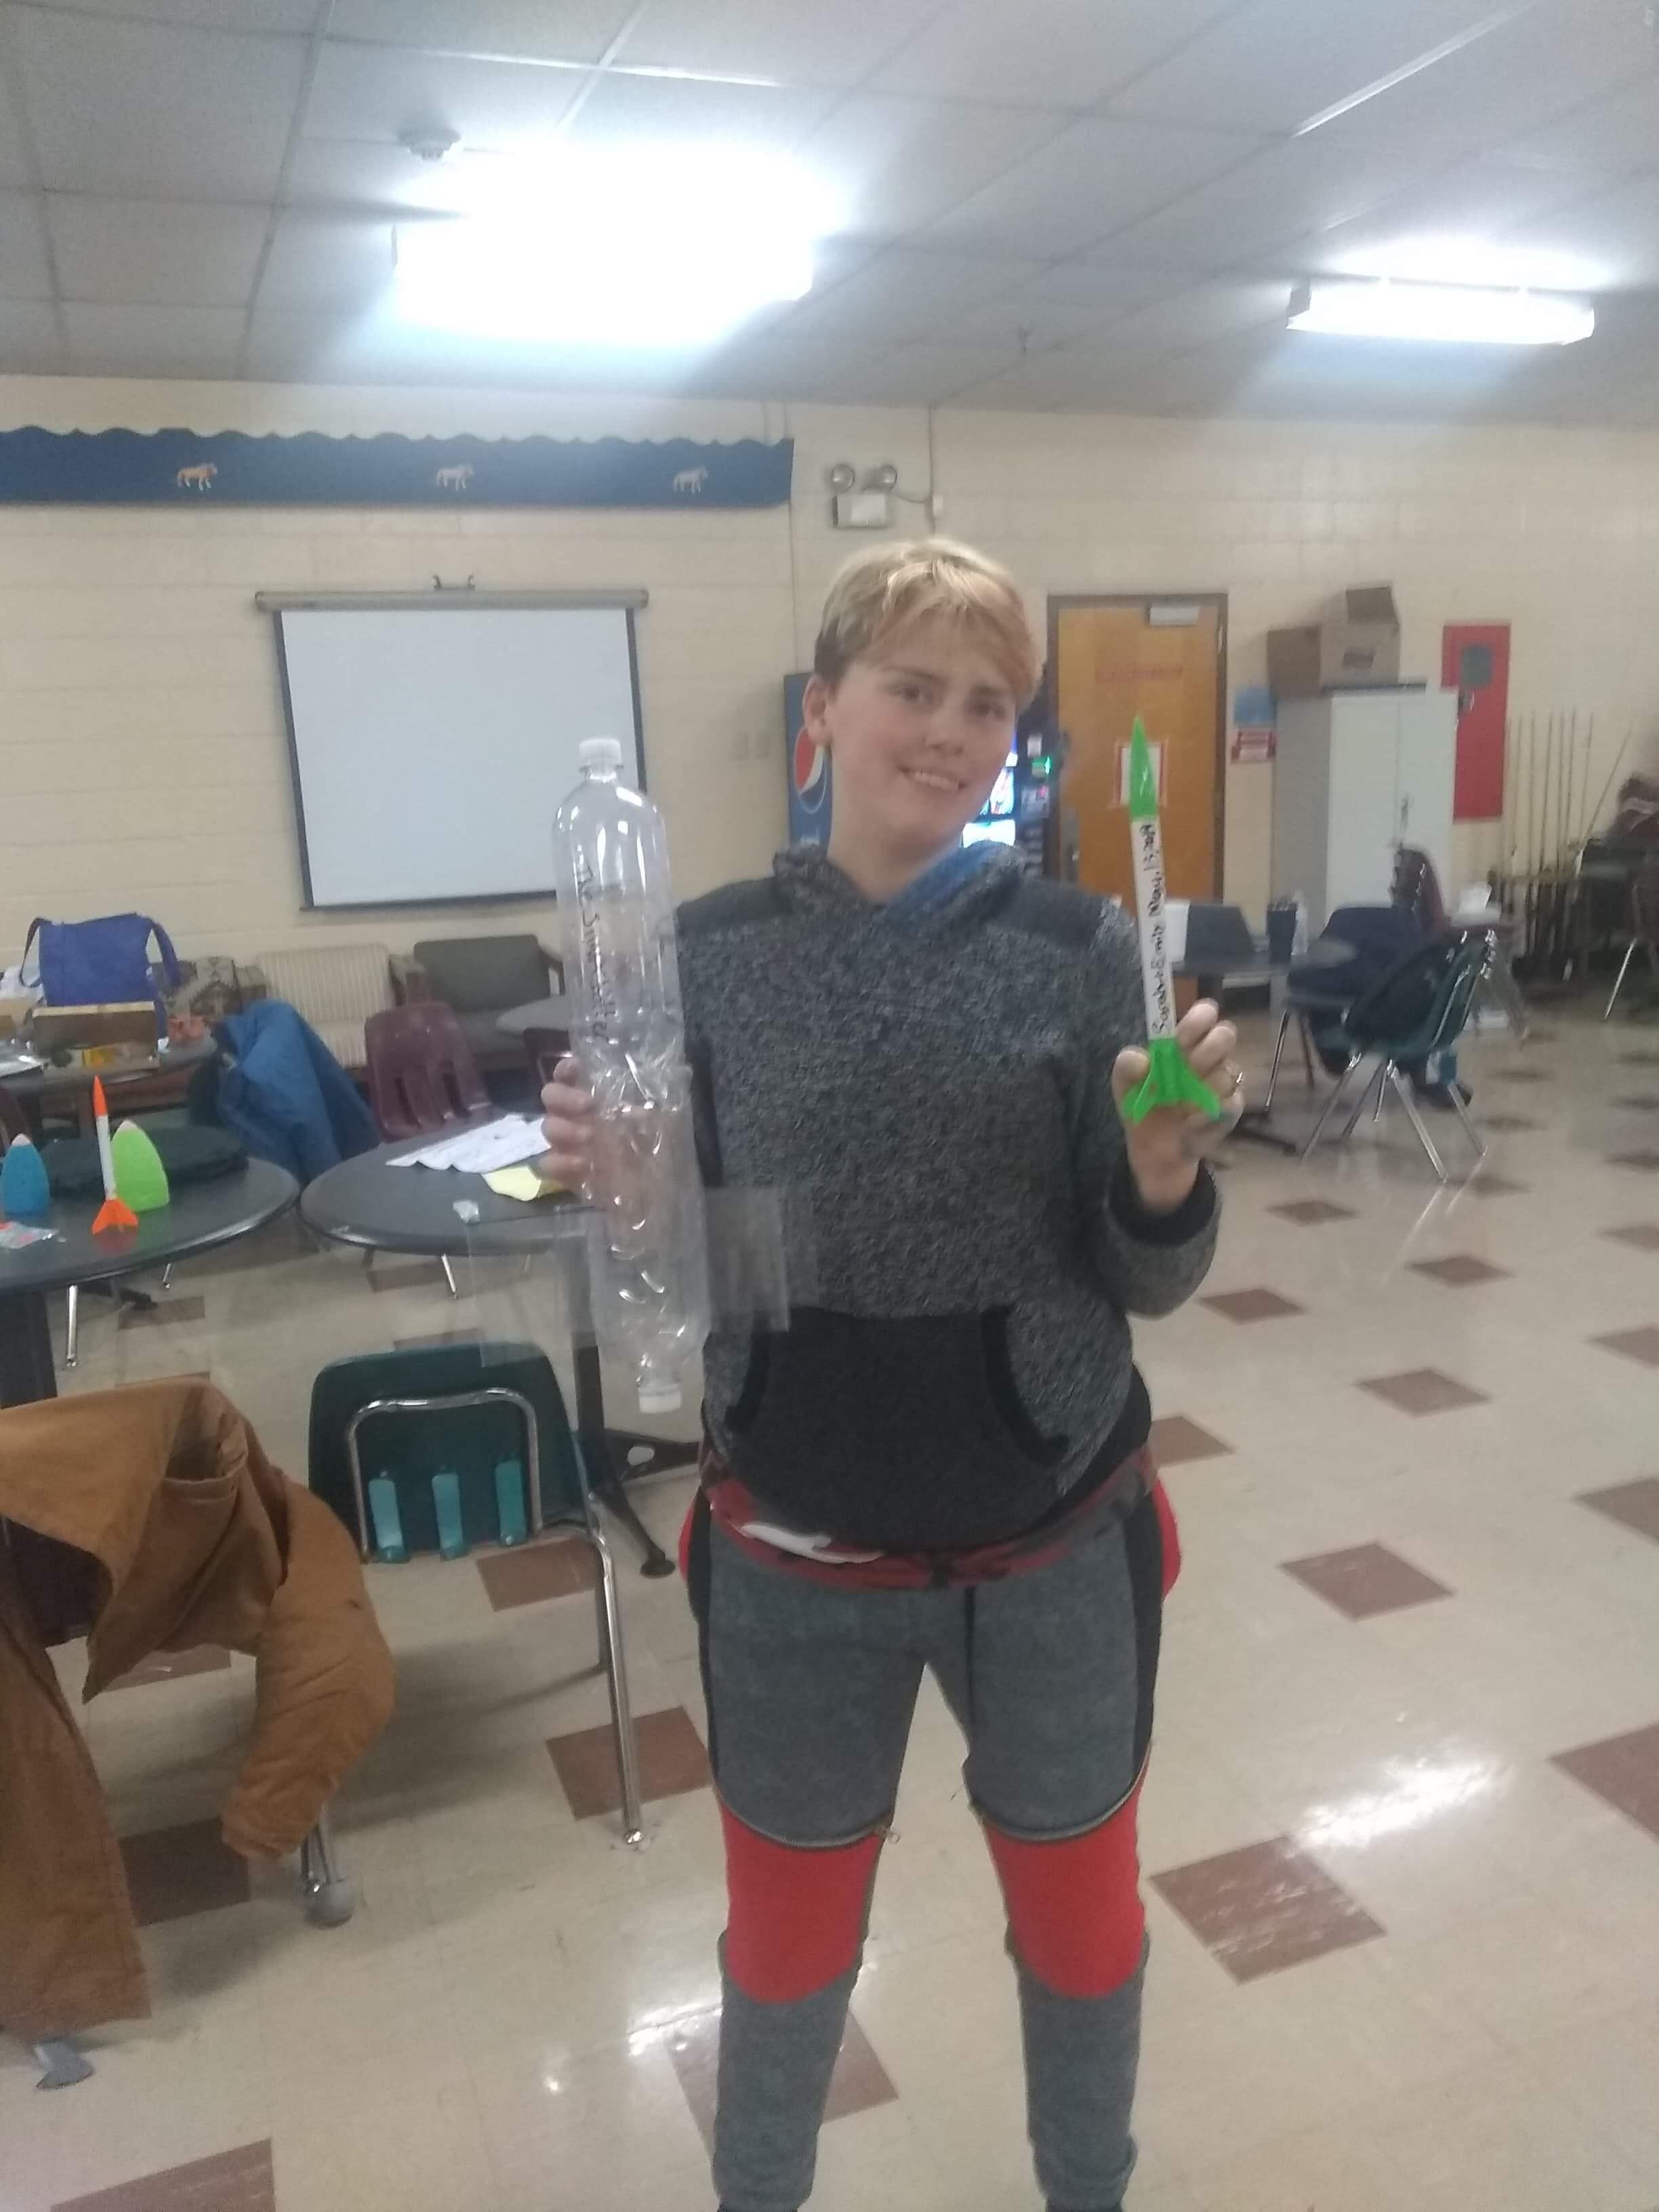 Female student in gray sweatshirt holds two liter bottles in right hand and small rocket in left hand